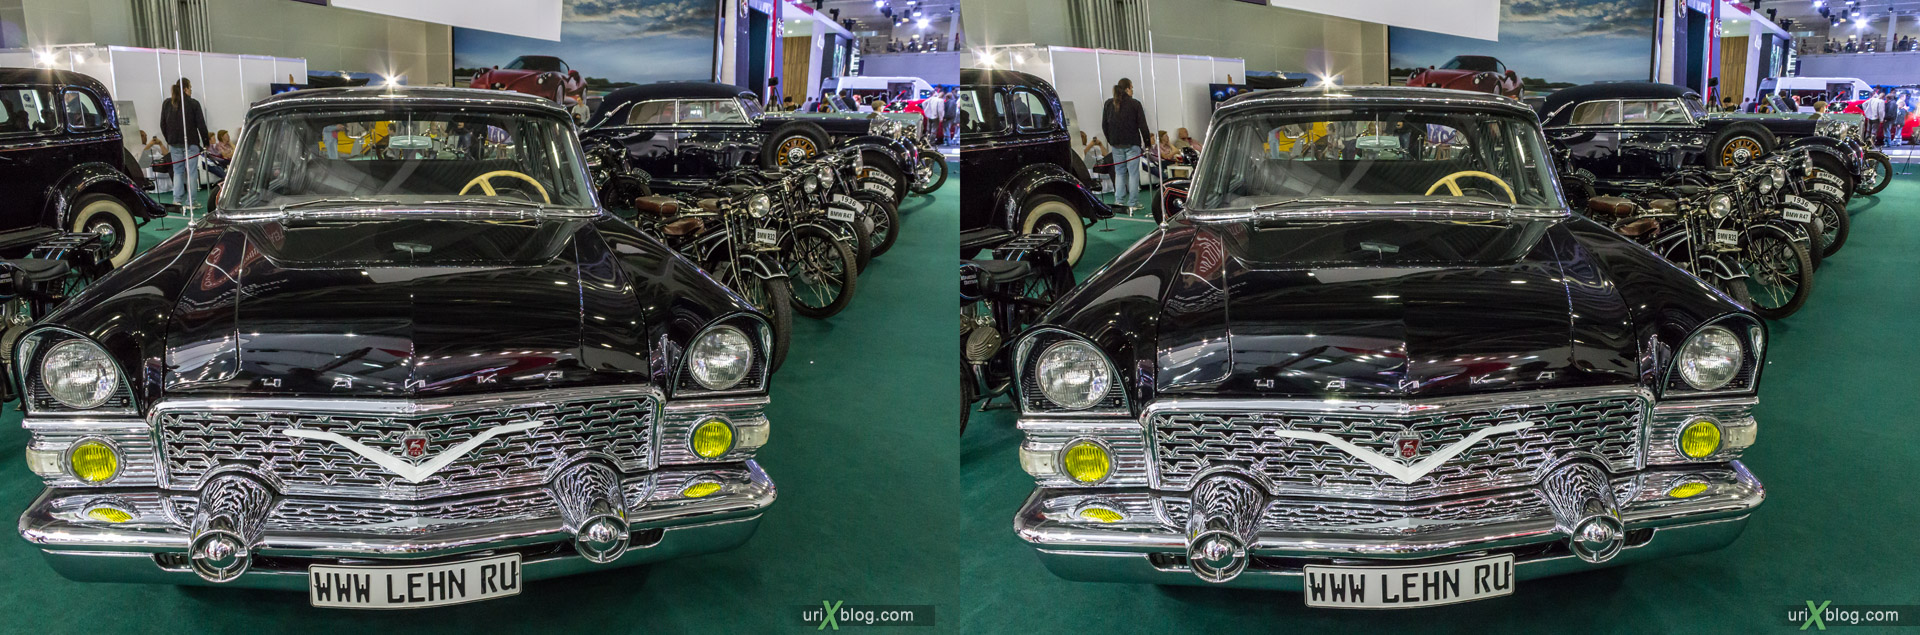 2014, Old Chajka, Moscow International Automobile Salon, MIAS, Crocus Expo, Moscow, Russia, augest, 3D, stereo pair, cross-eyed, crossview, cross view stereo pair, stereoscopic